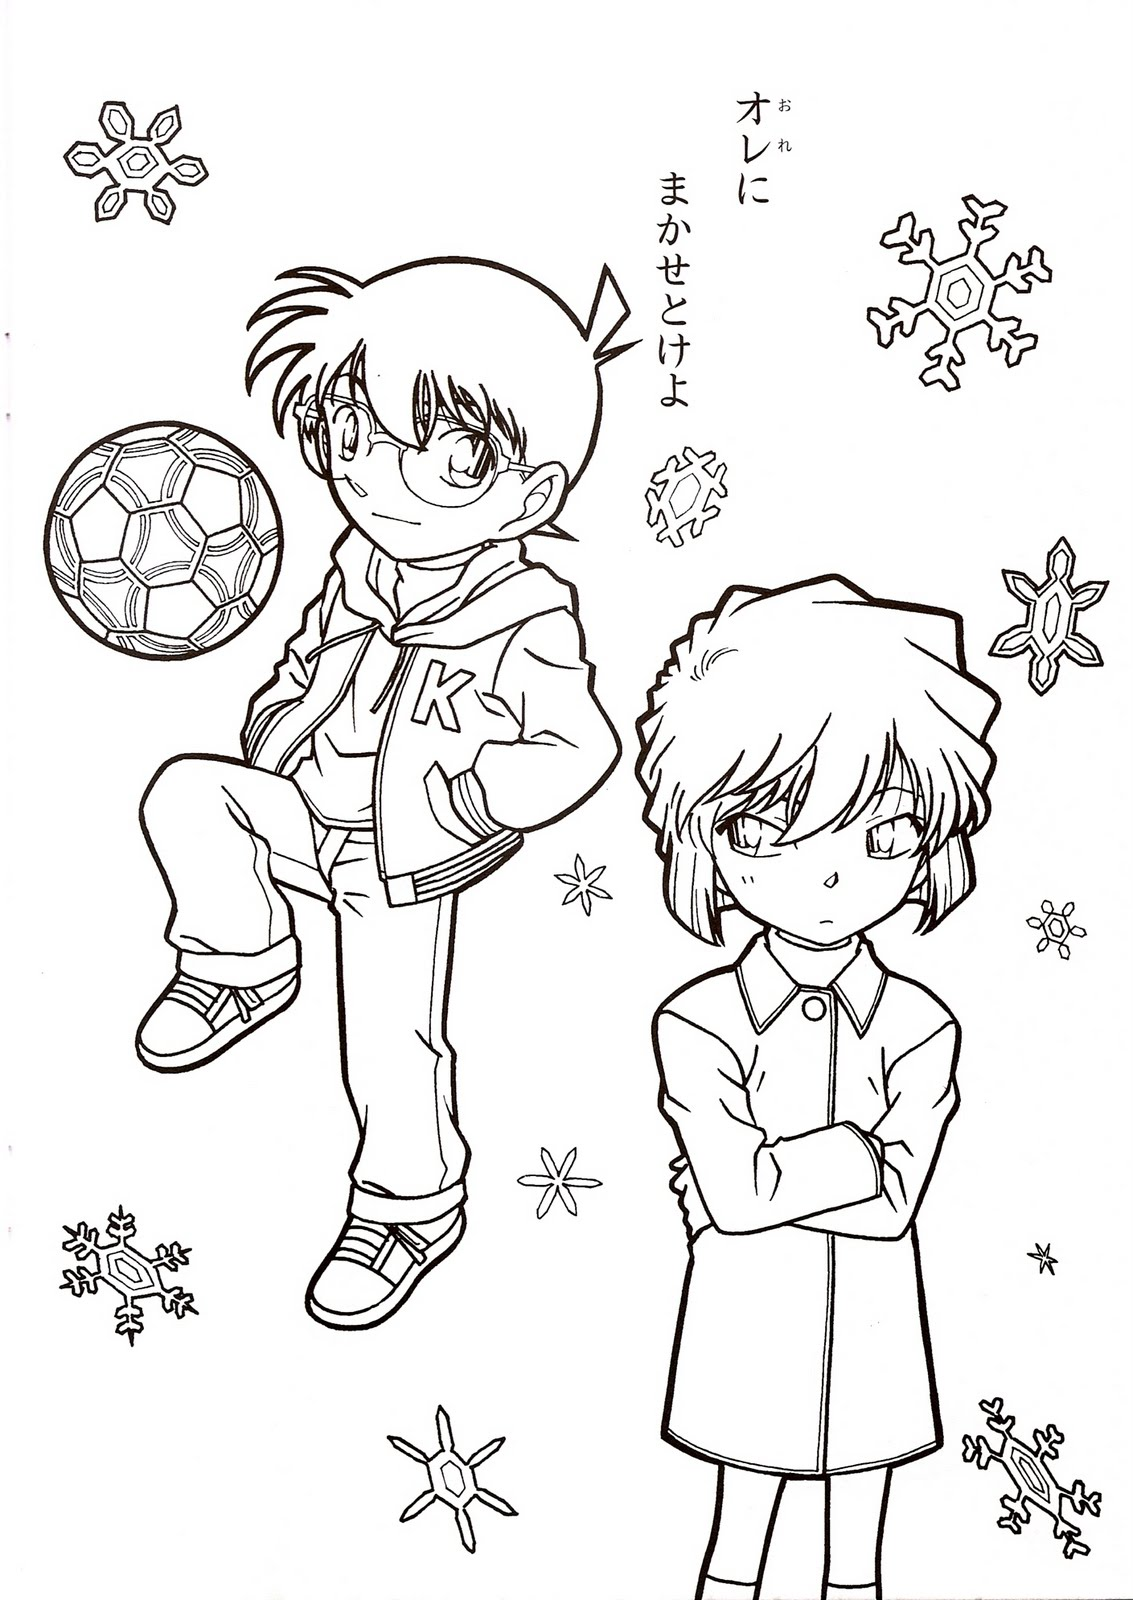 Free Detective Conan Coloring Pages Detective Conan Coloring Pages